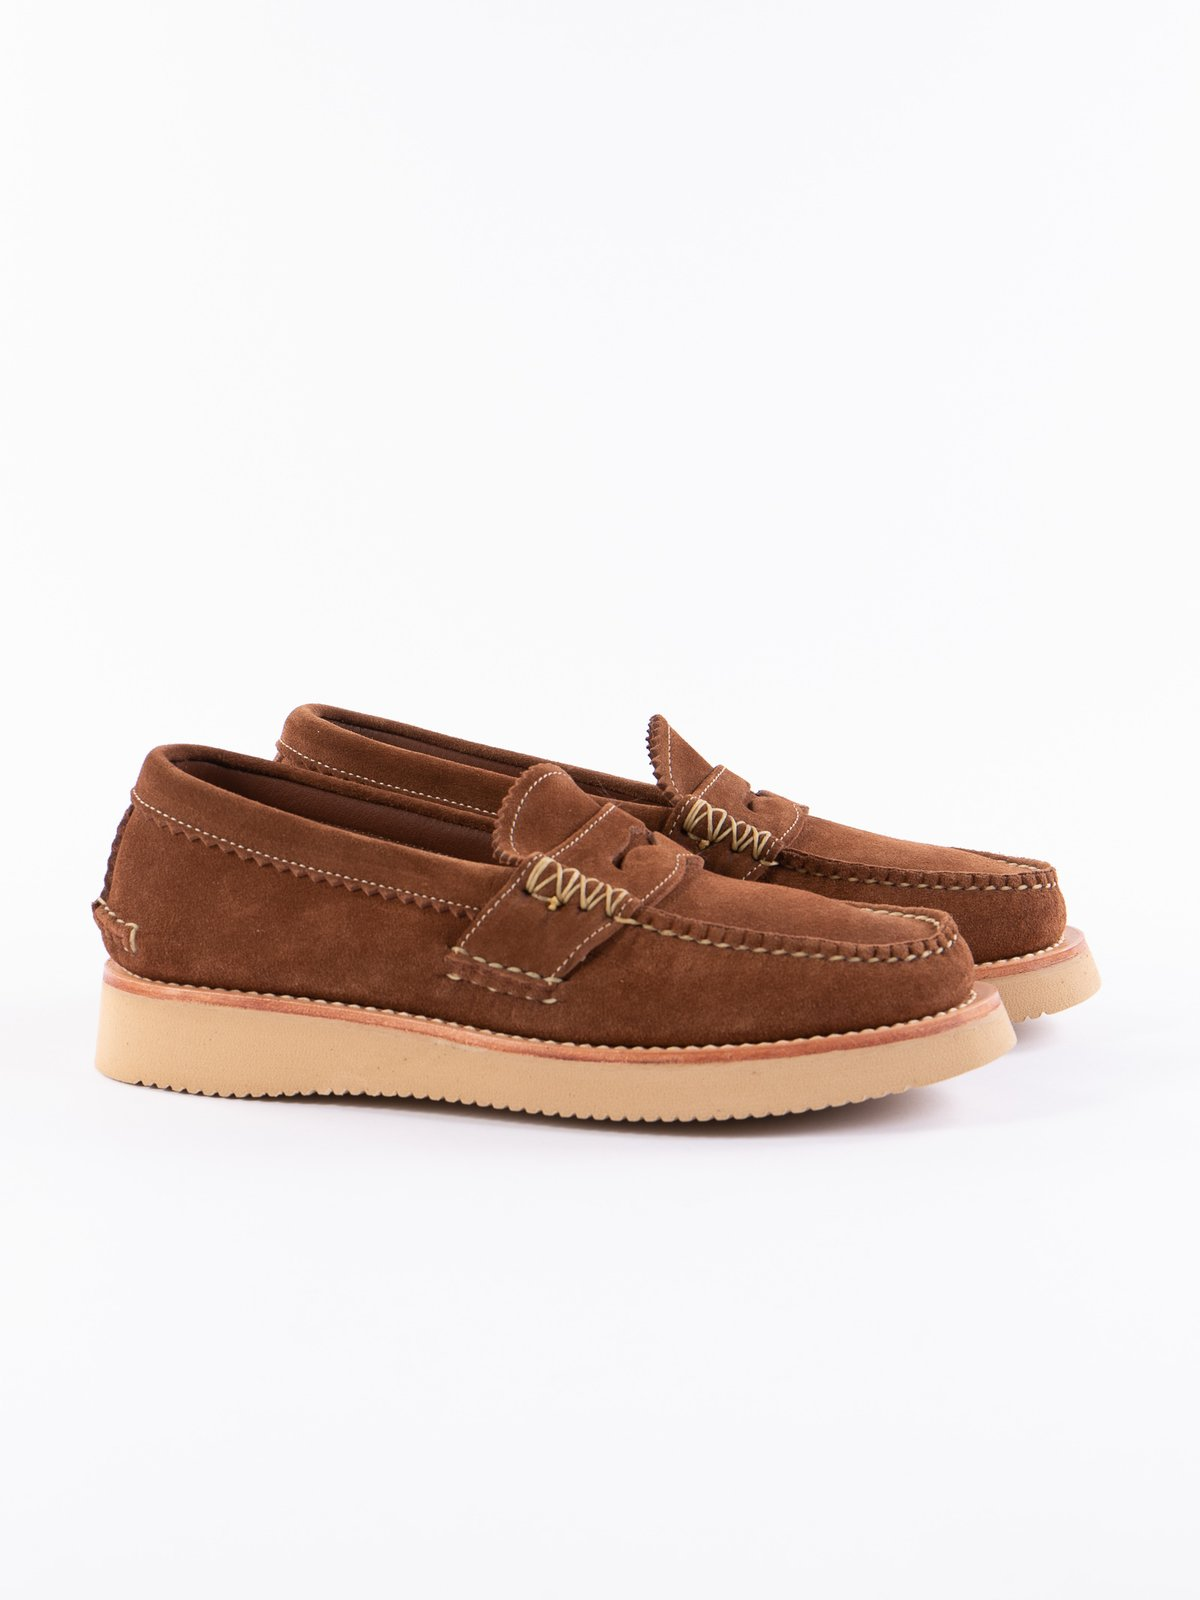 FO Snuff Loafer w/2021 Sole Exclusive - Image 1